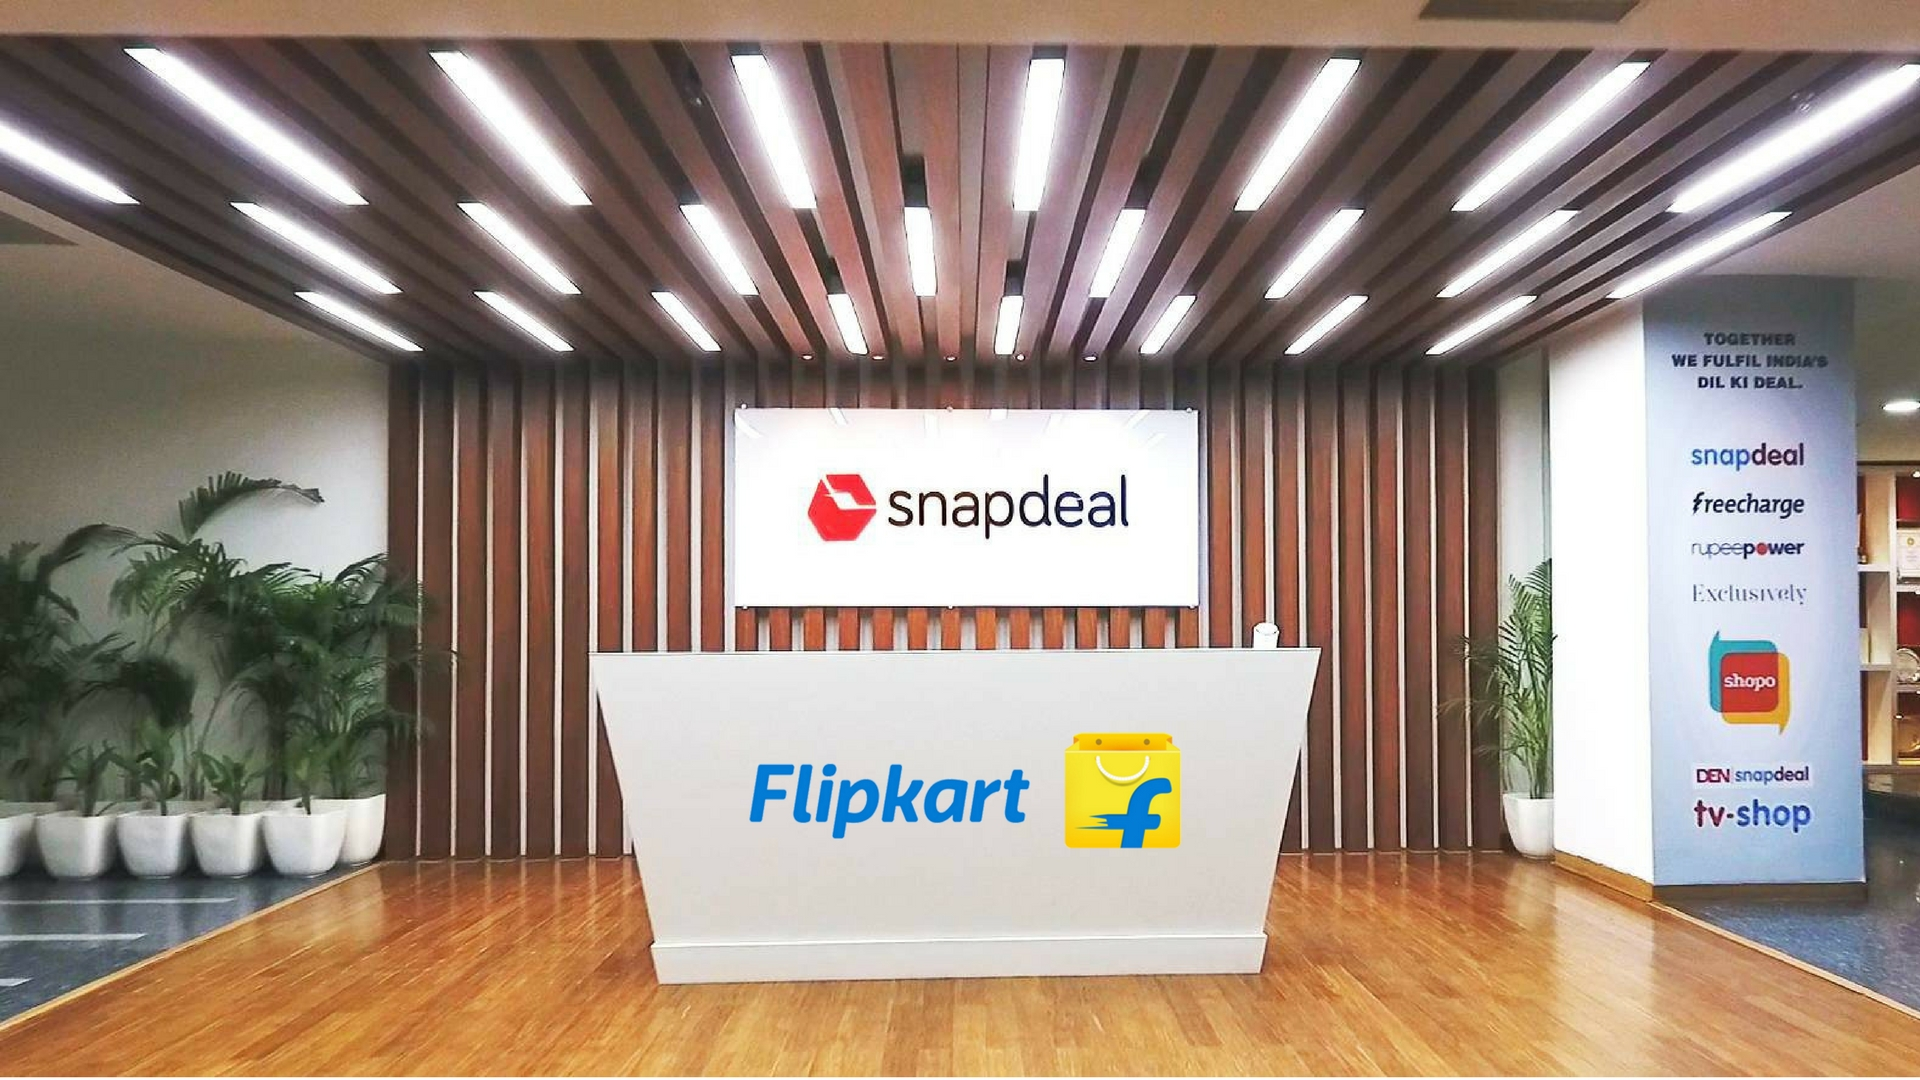 snapdeal agrees to flipkart revised offer